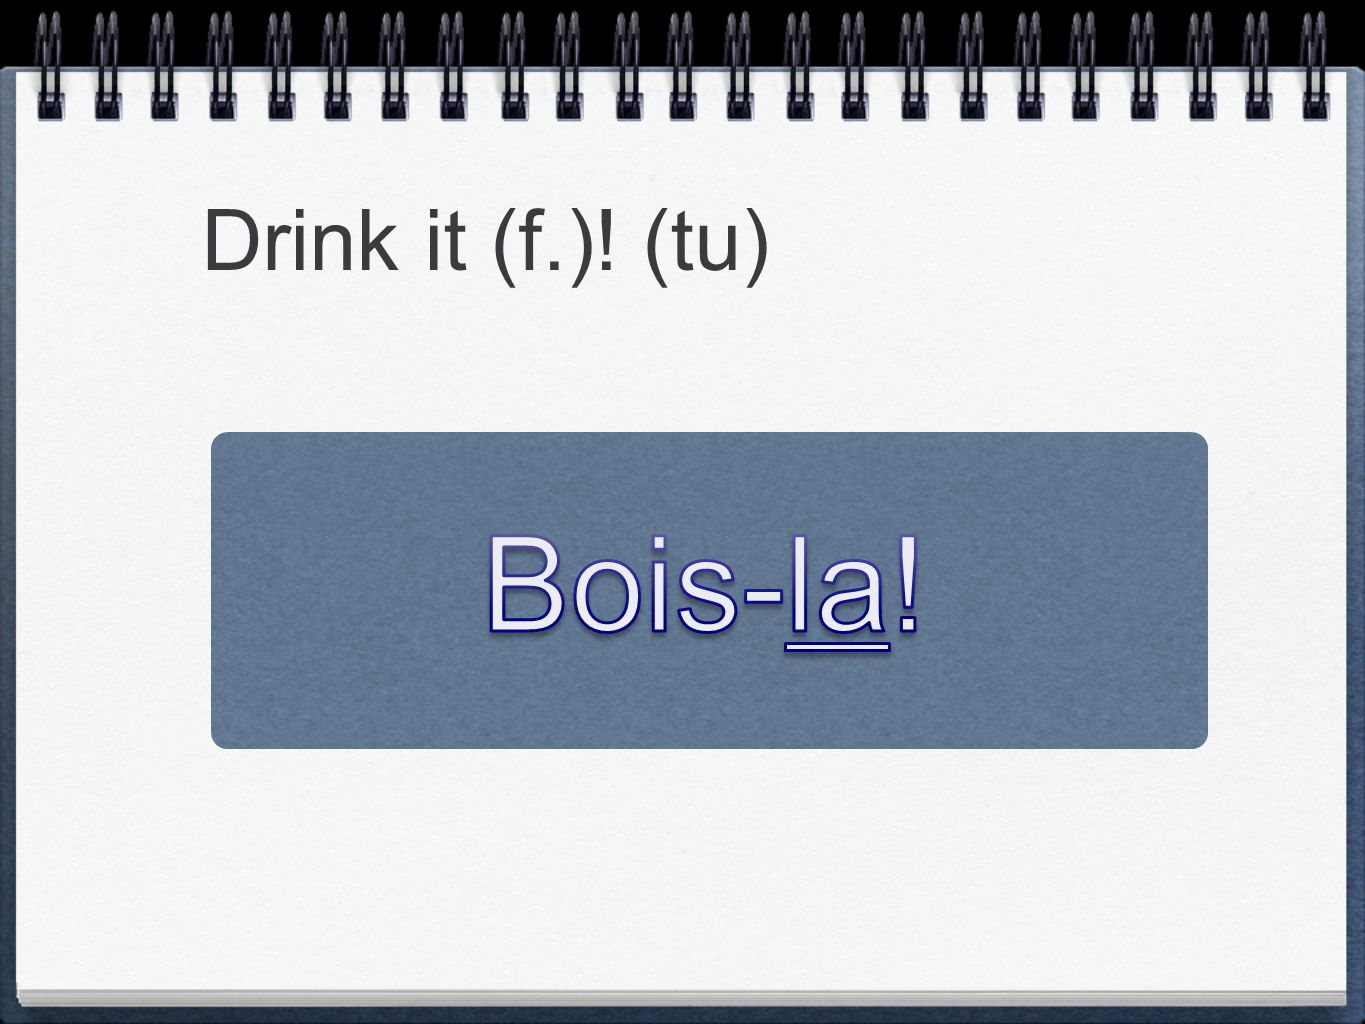 Drink it (f.)! (tu) Bois-la!